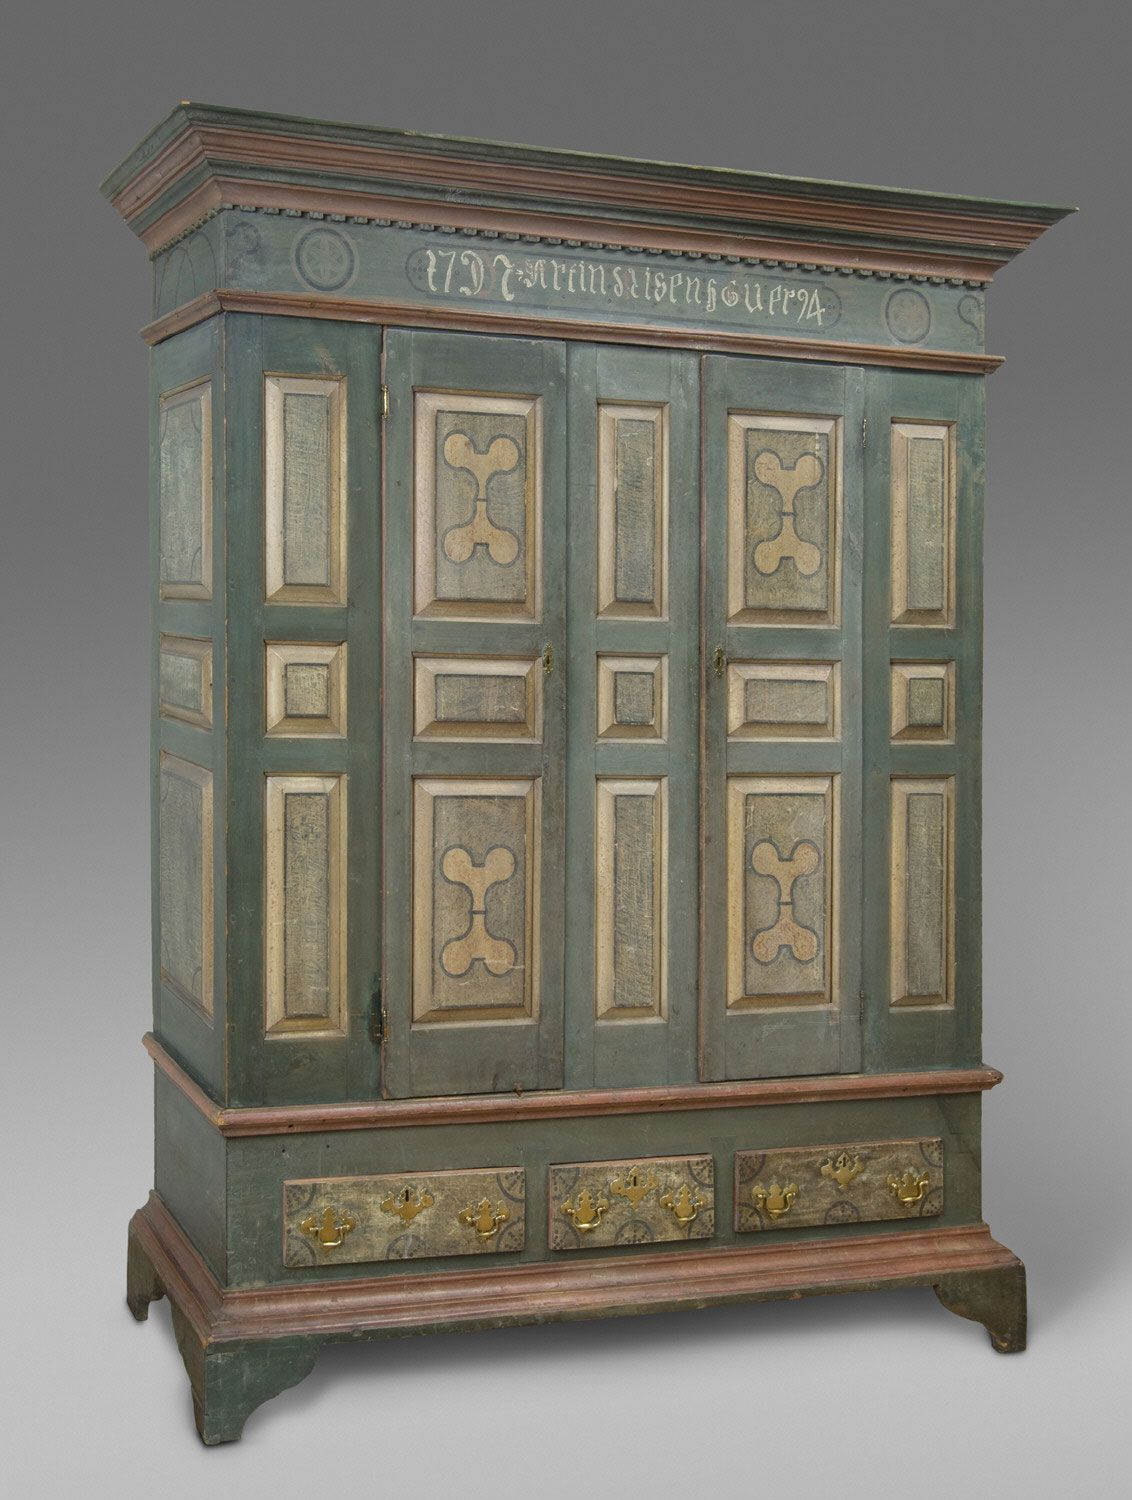 Wardrobe Schrank Artist Maker Unknown American Pennsylvania German 1794 Furniture Painting Furniture Diy Carved Furniture